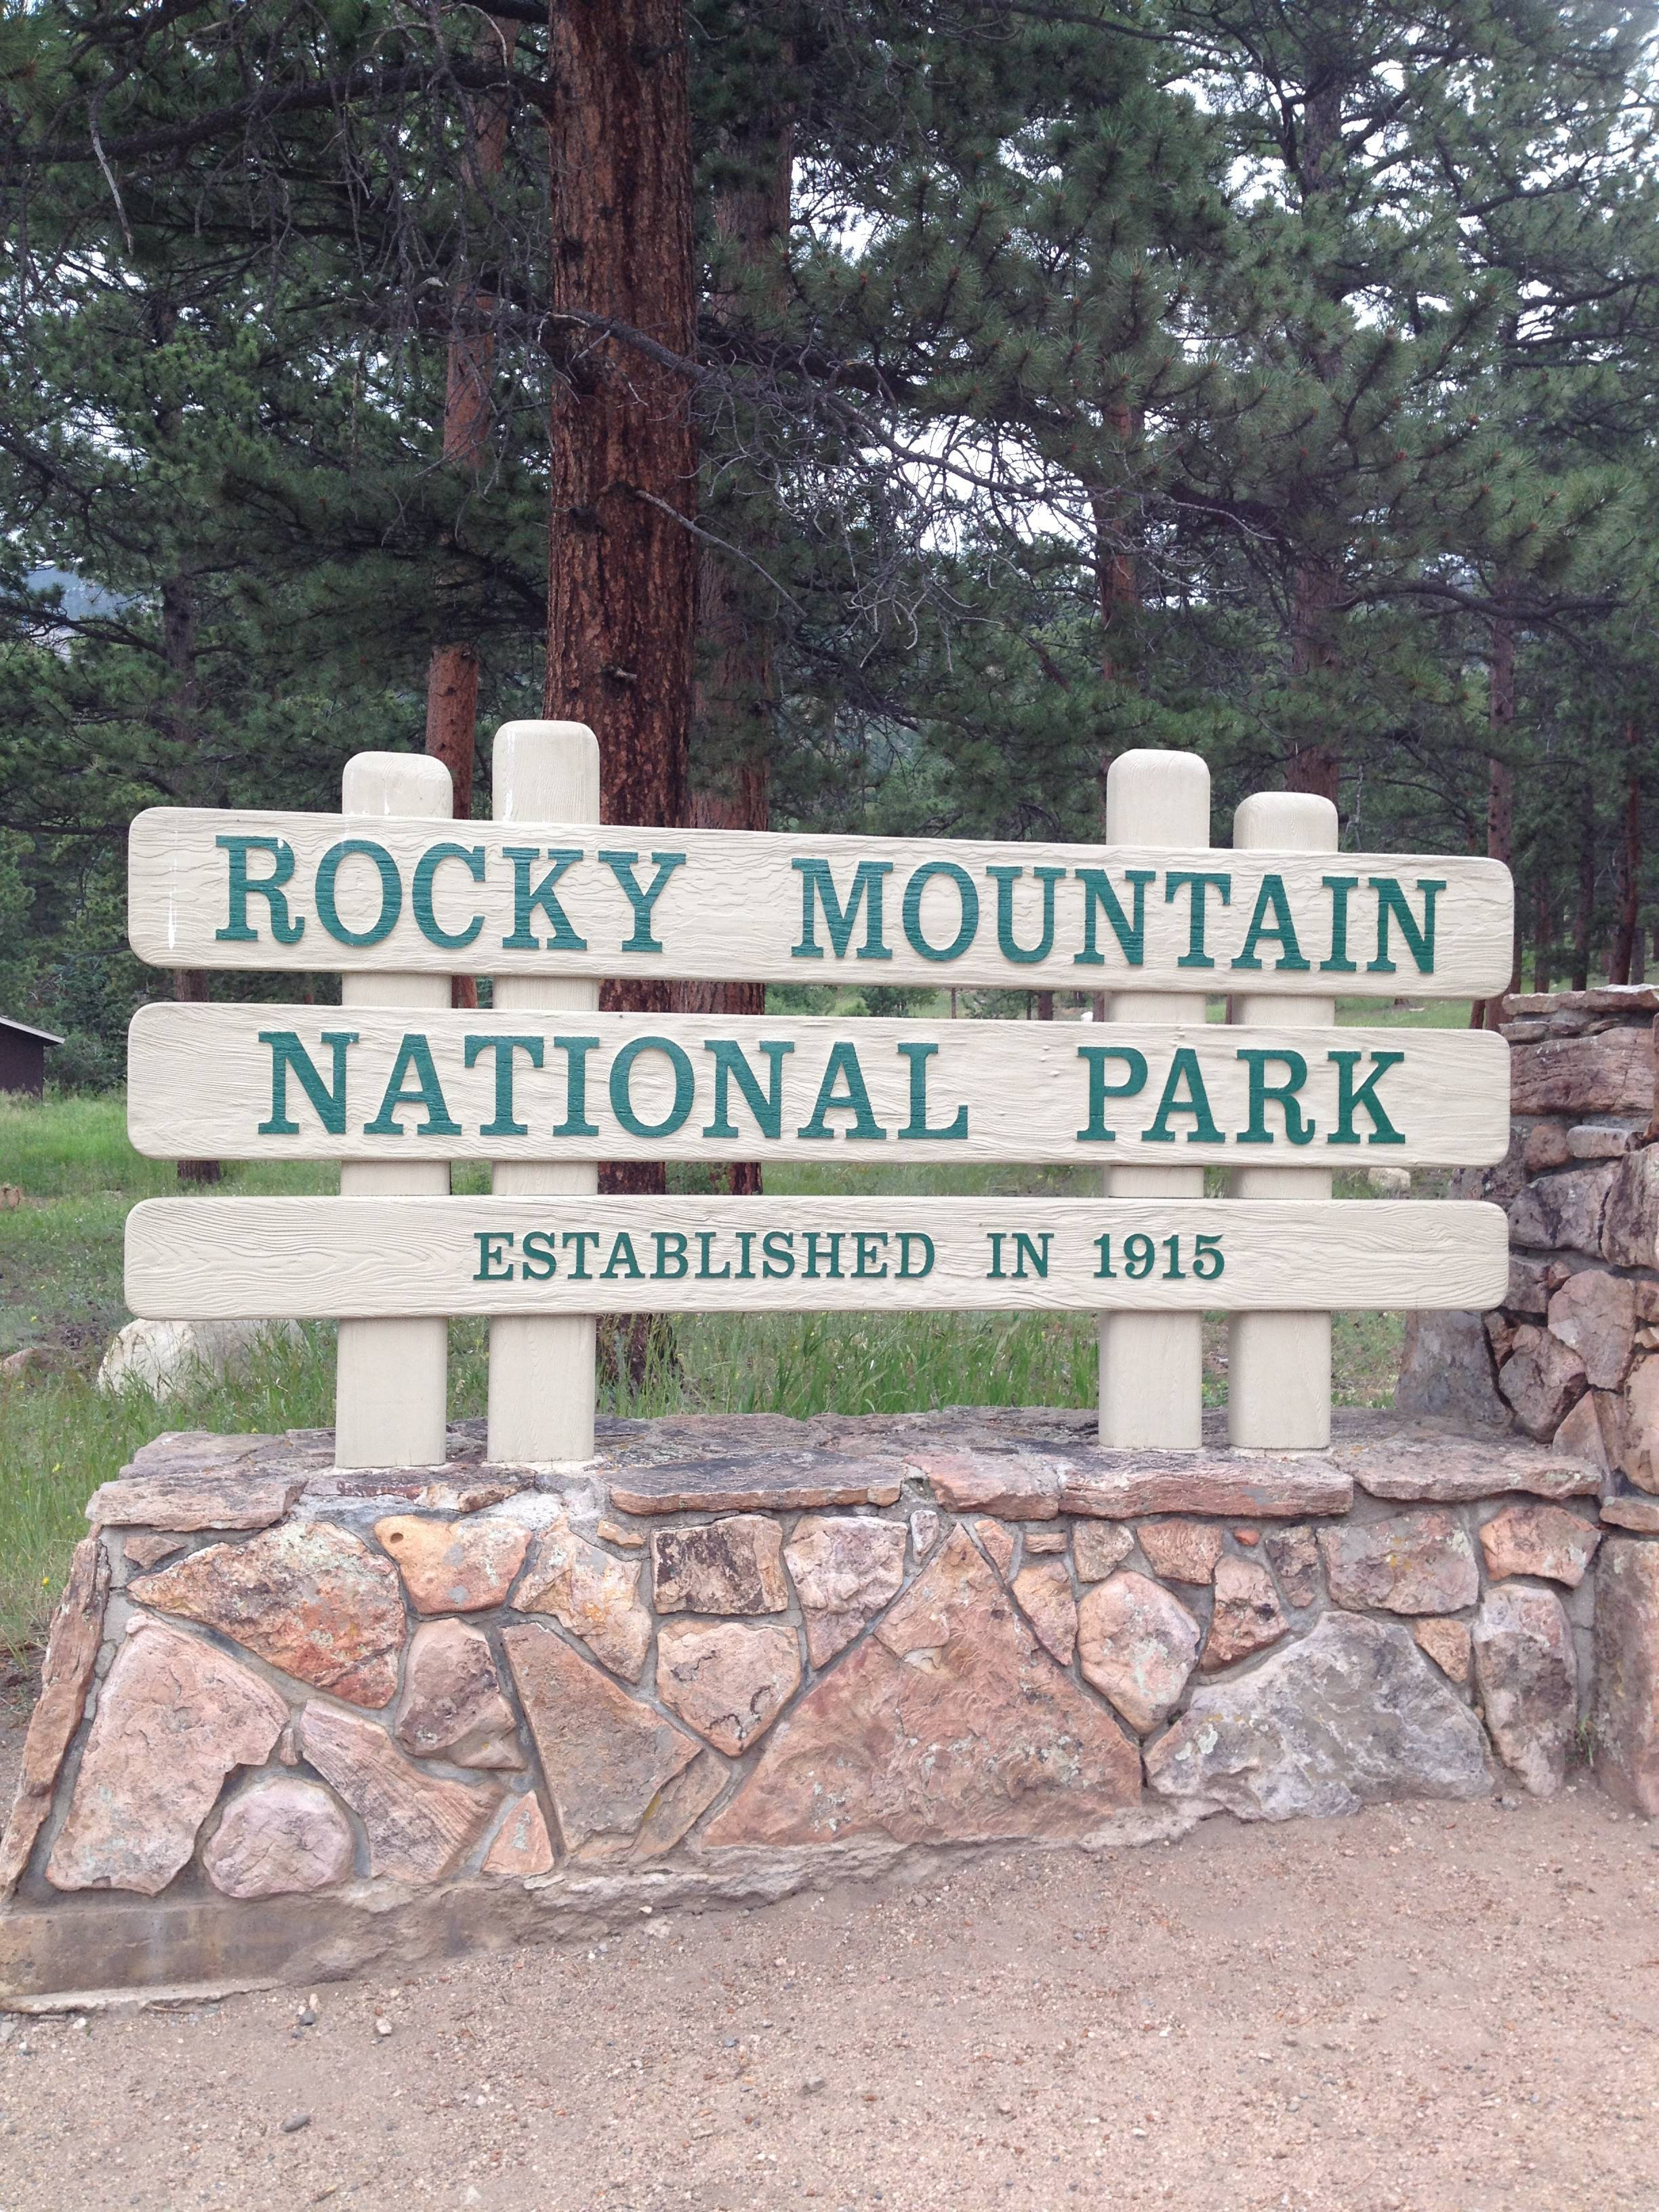 Rocky Mountain National Park in Colorado is launching a yearlong celebration of its centennial in September.